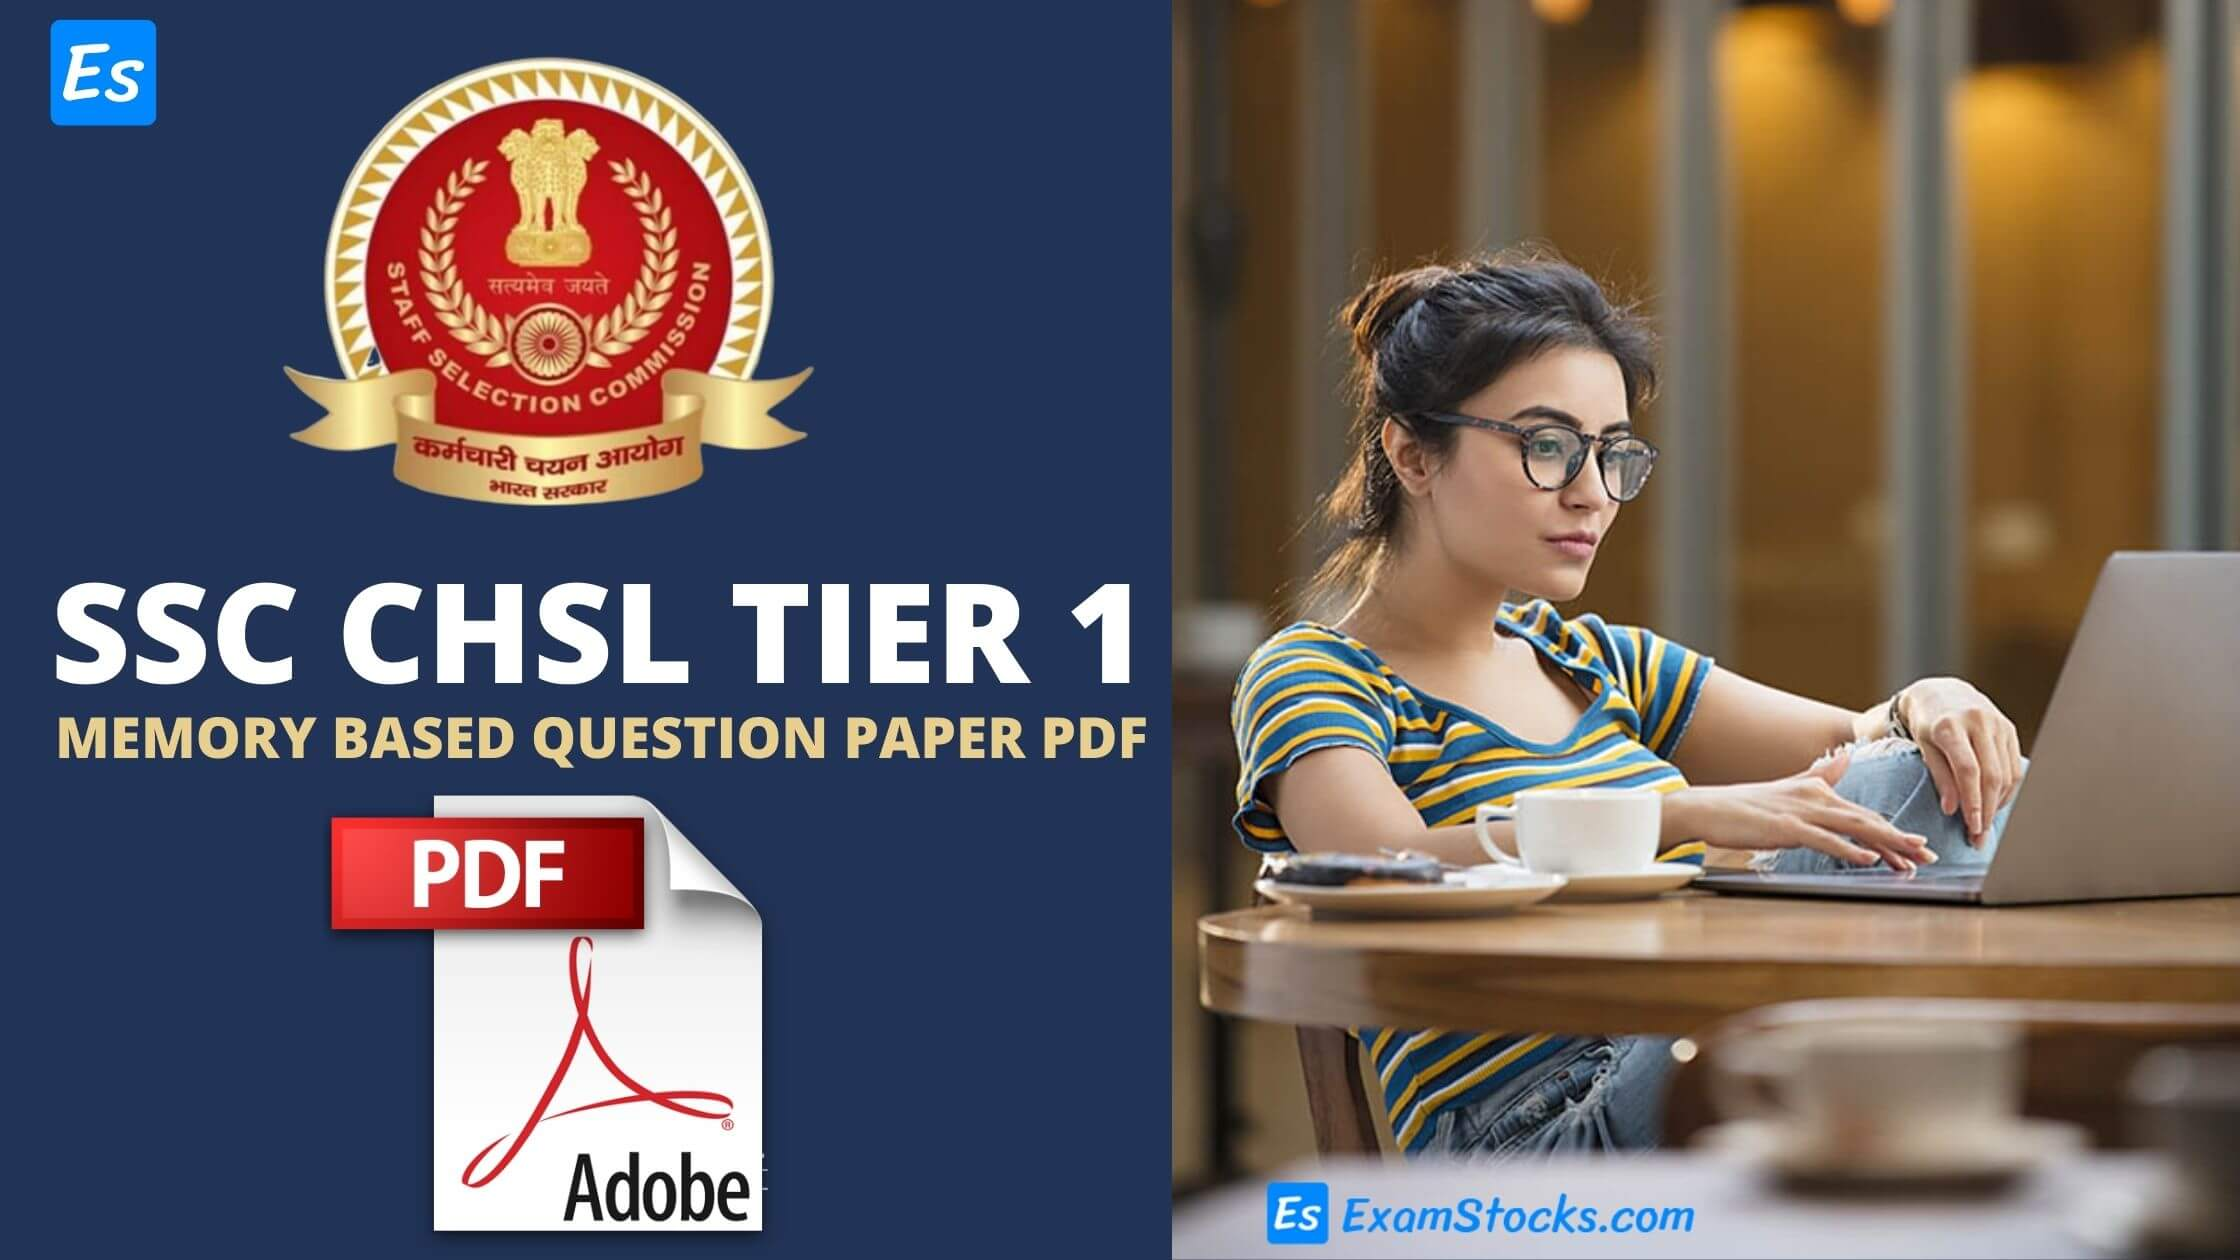 SSC CHSL Memory Based Question Paper PDF 2021 All Shifts